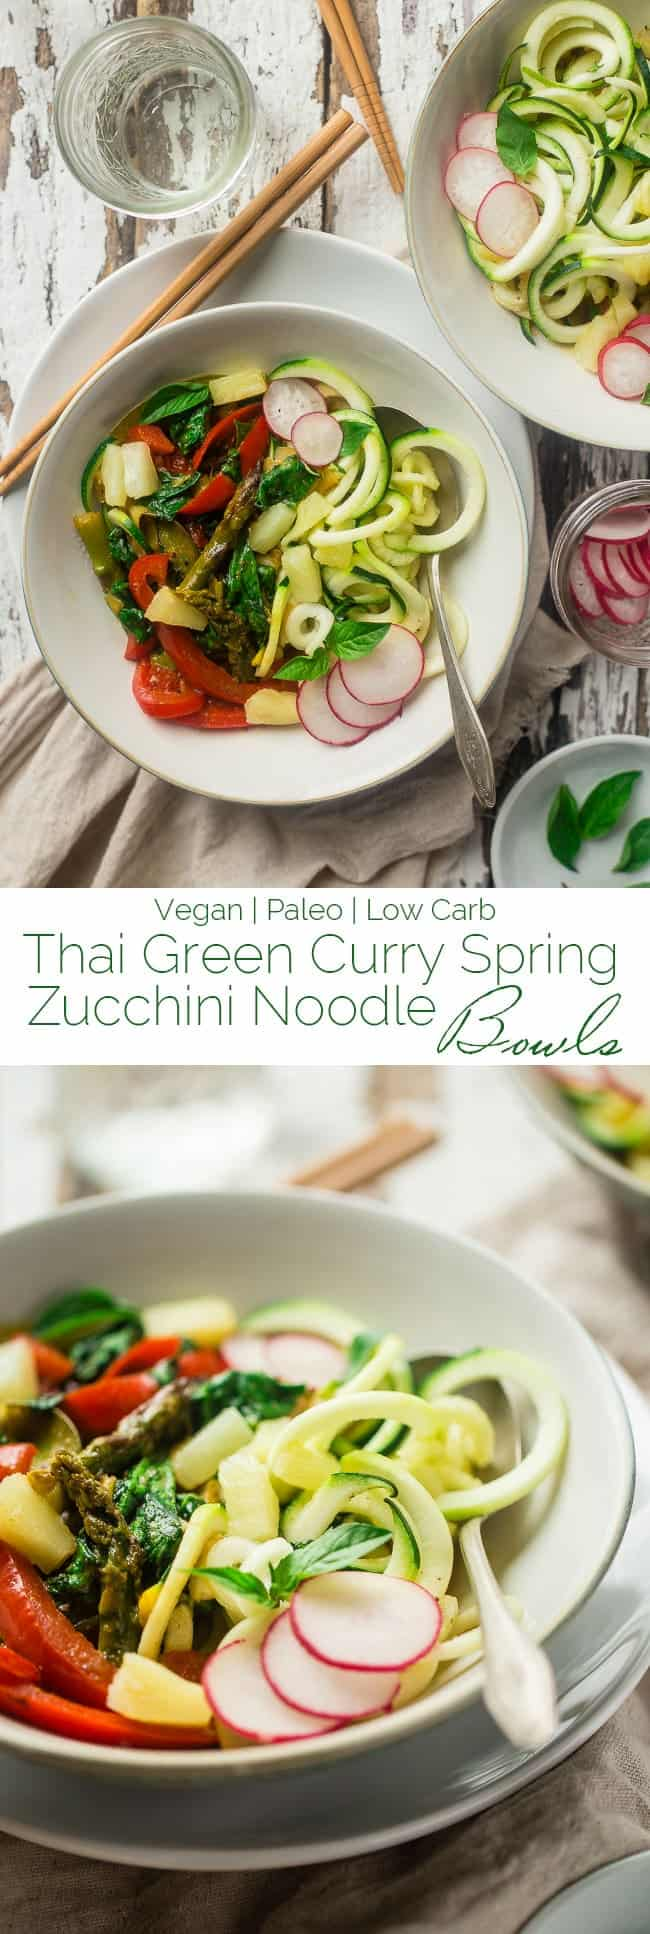 Vegan and Paleo Green Coconut Curry Spring Veggie Bowls with Zucchini Noodles - These easy bowls are made with pineapple, spring veggies, zucchini noodles and a creamy green coconut curry sauce! They're perfect for Meatless Monday and only 250 calories! | Foodfaithfitness.com | @FoodFaithFit